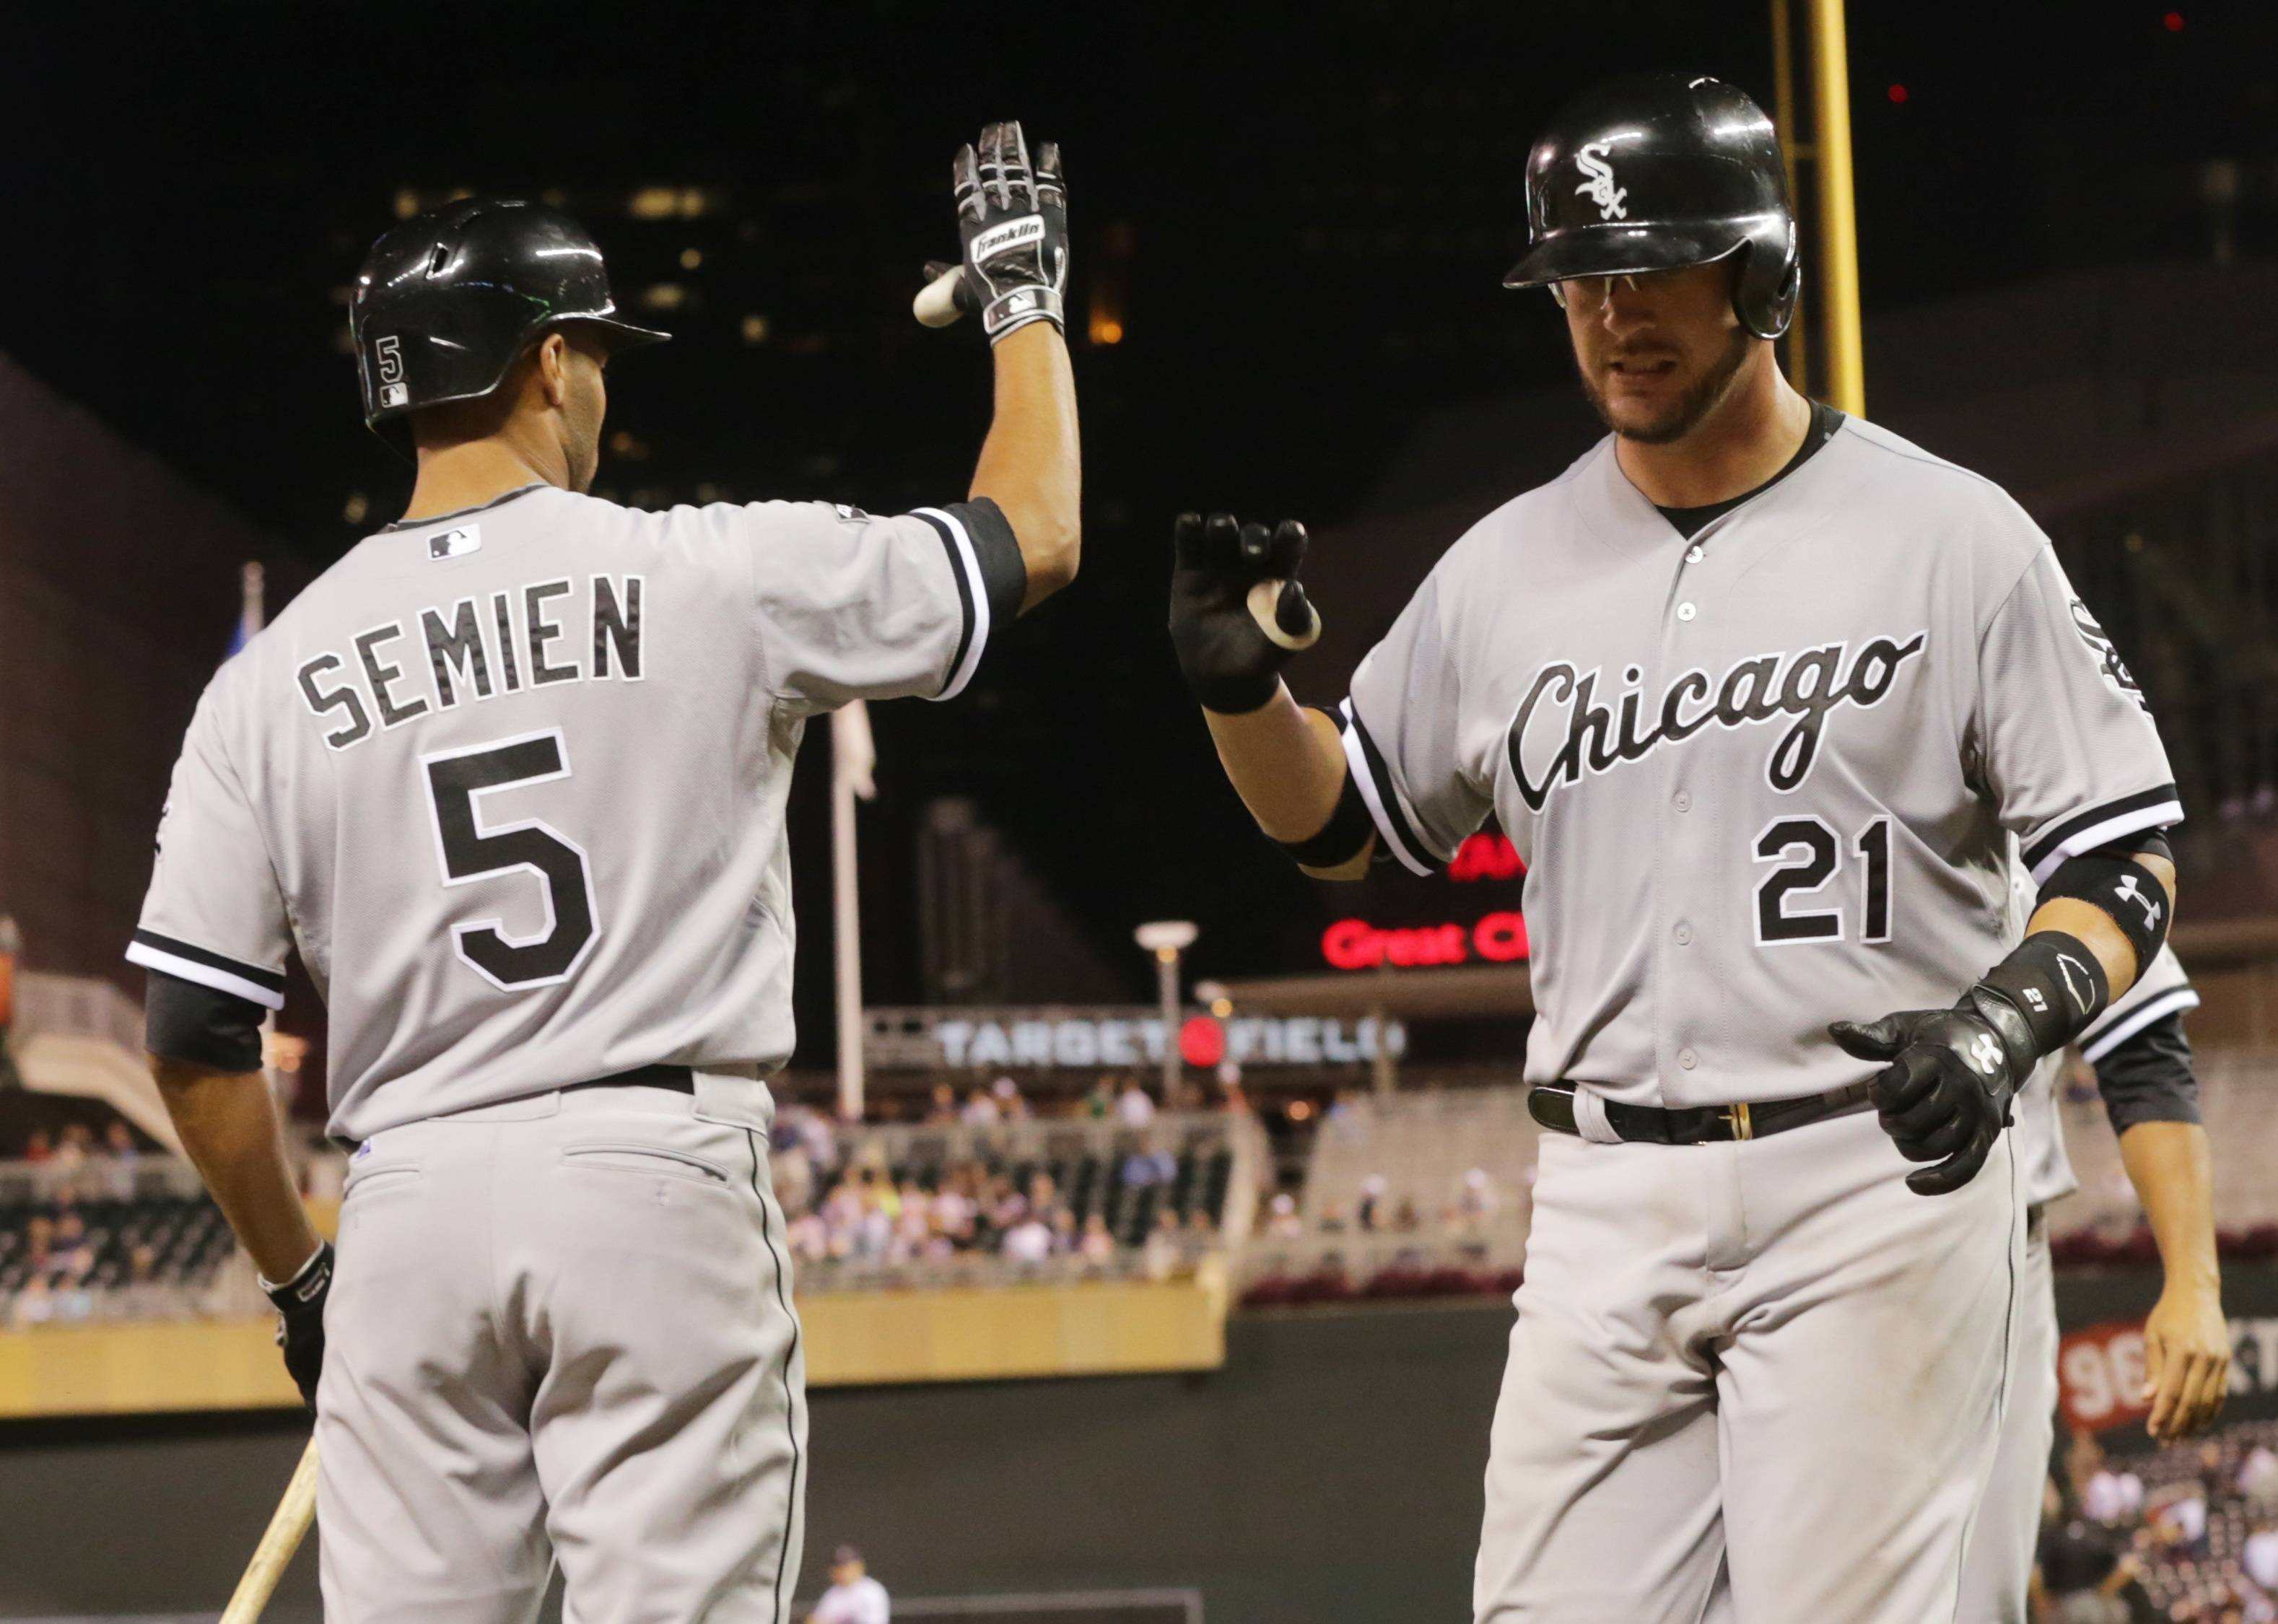 The White Sox's Tyler Flowers, right, is congratulated by Marcus Semien following his two-run home run off Minnesota Twins pitcher Lester Oliveros in the 10th inning of Tuesday night's game in Minneapolis. The White Sox won 6-3.